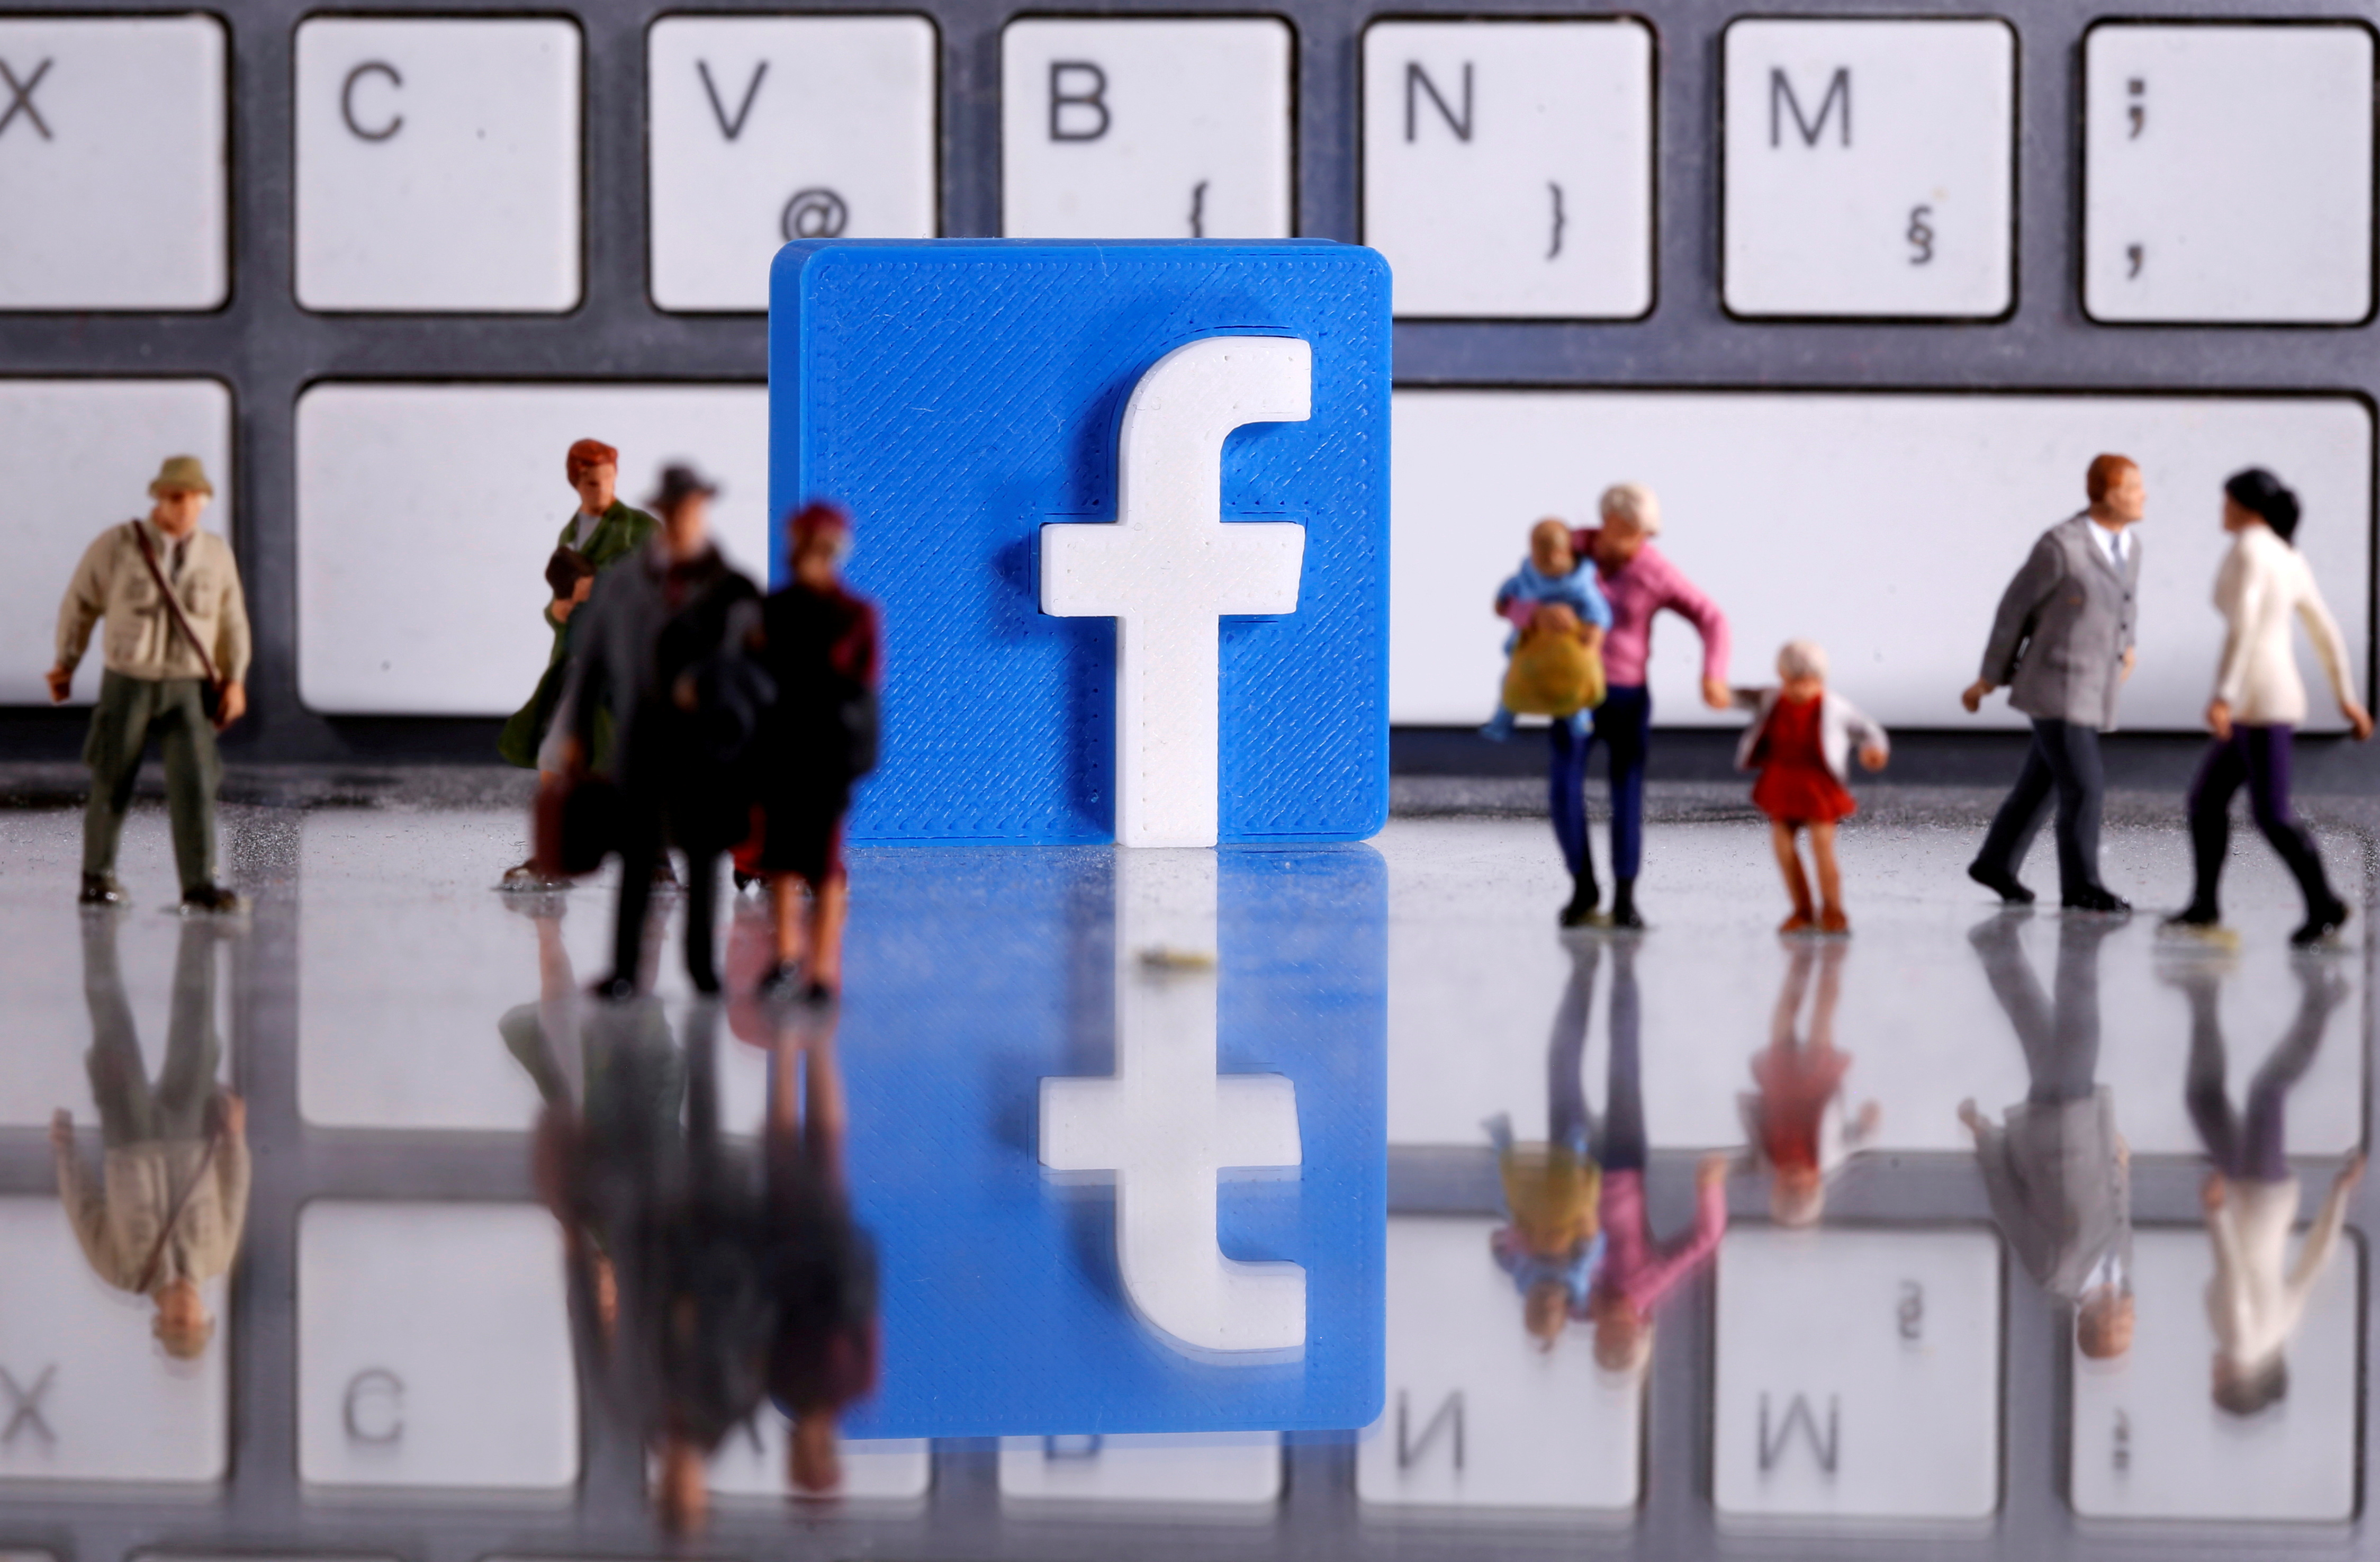 A 3D printed Facebook logo is placed between small toy people figures in front of a keyboard in this illustration taken April 12, 2020. REUTERS/Dado Ruvic/Illustration/File Photo